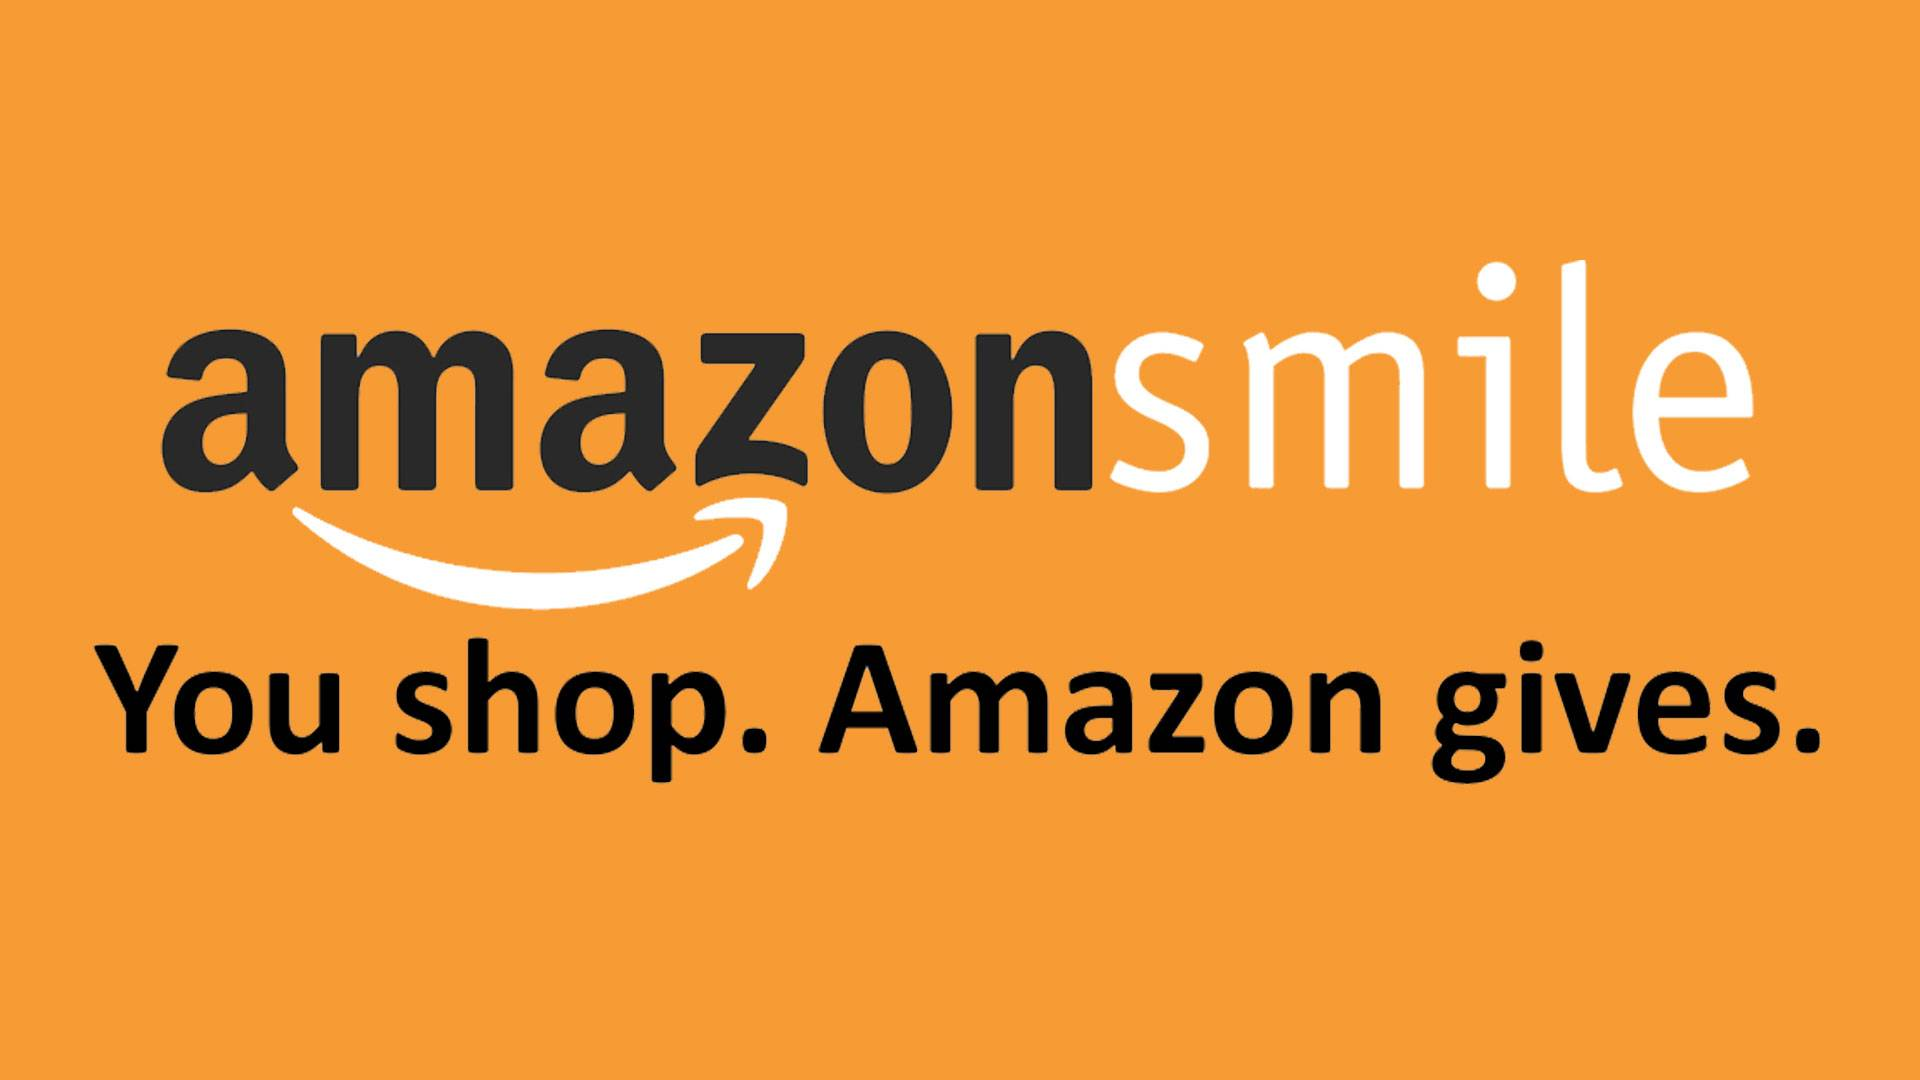 amazonsmile You shop. Amazon gives.